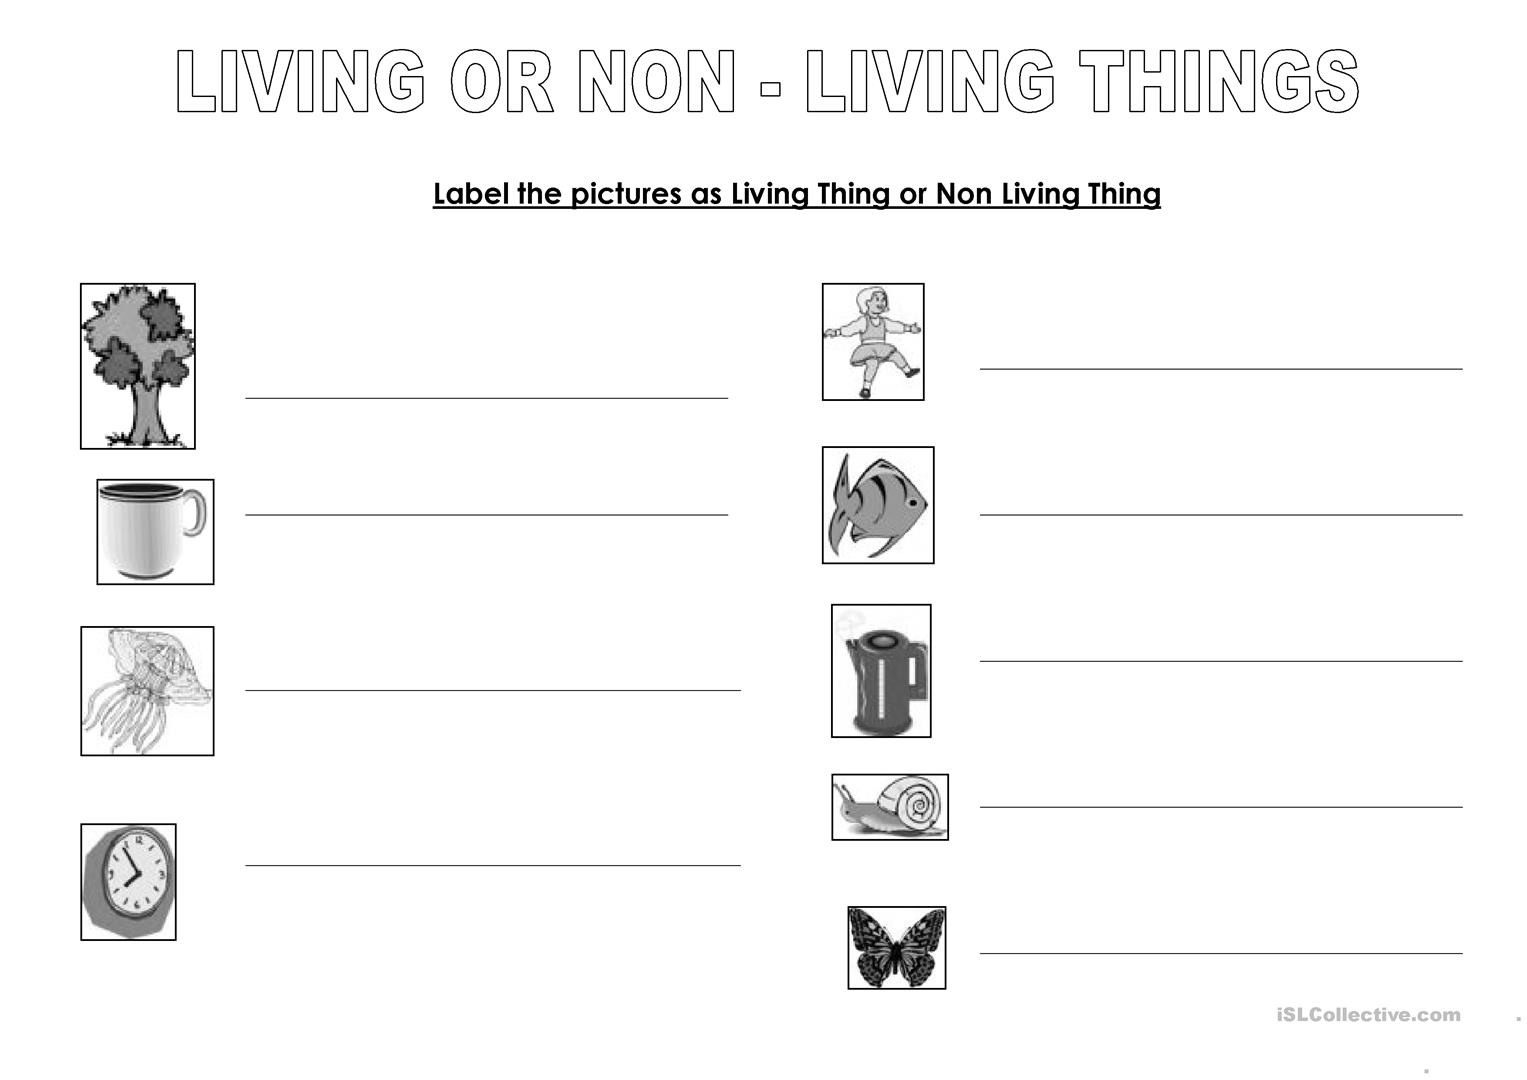 living or non living things worksheet free esl printable worksheets made by teachers. Black Bedroom Furniture Sets. Home Design Ideas